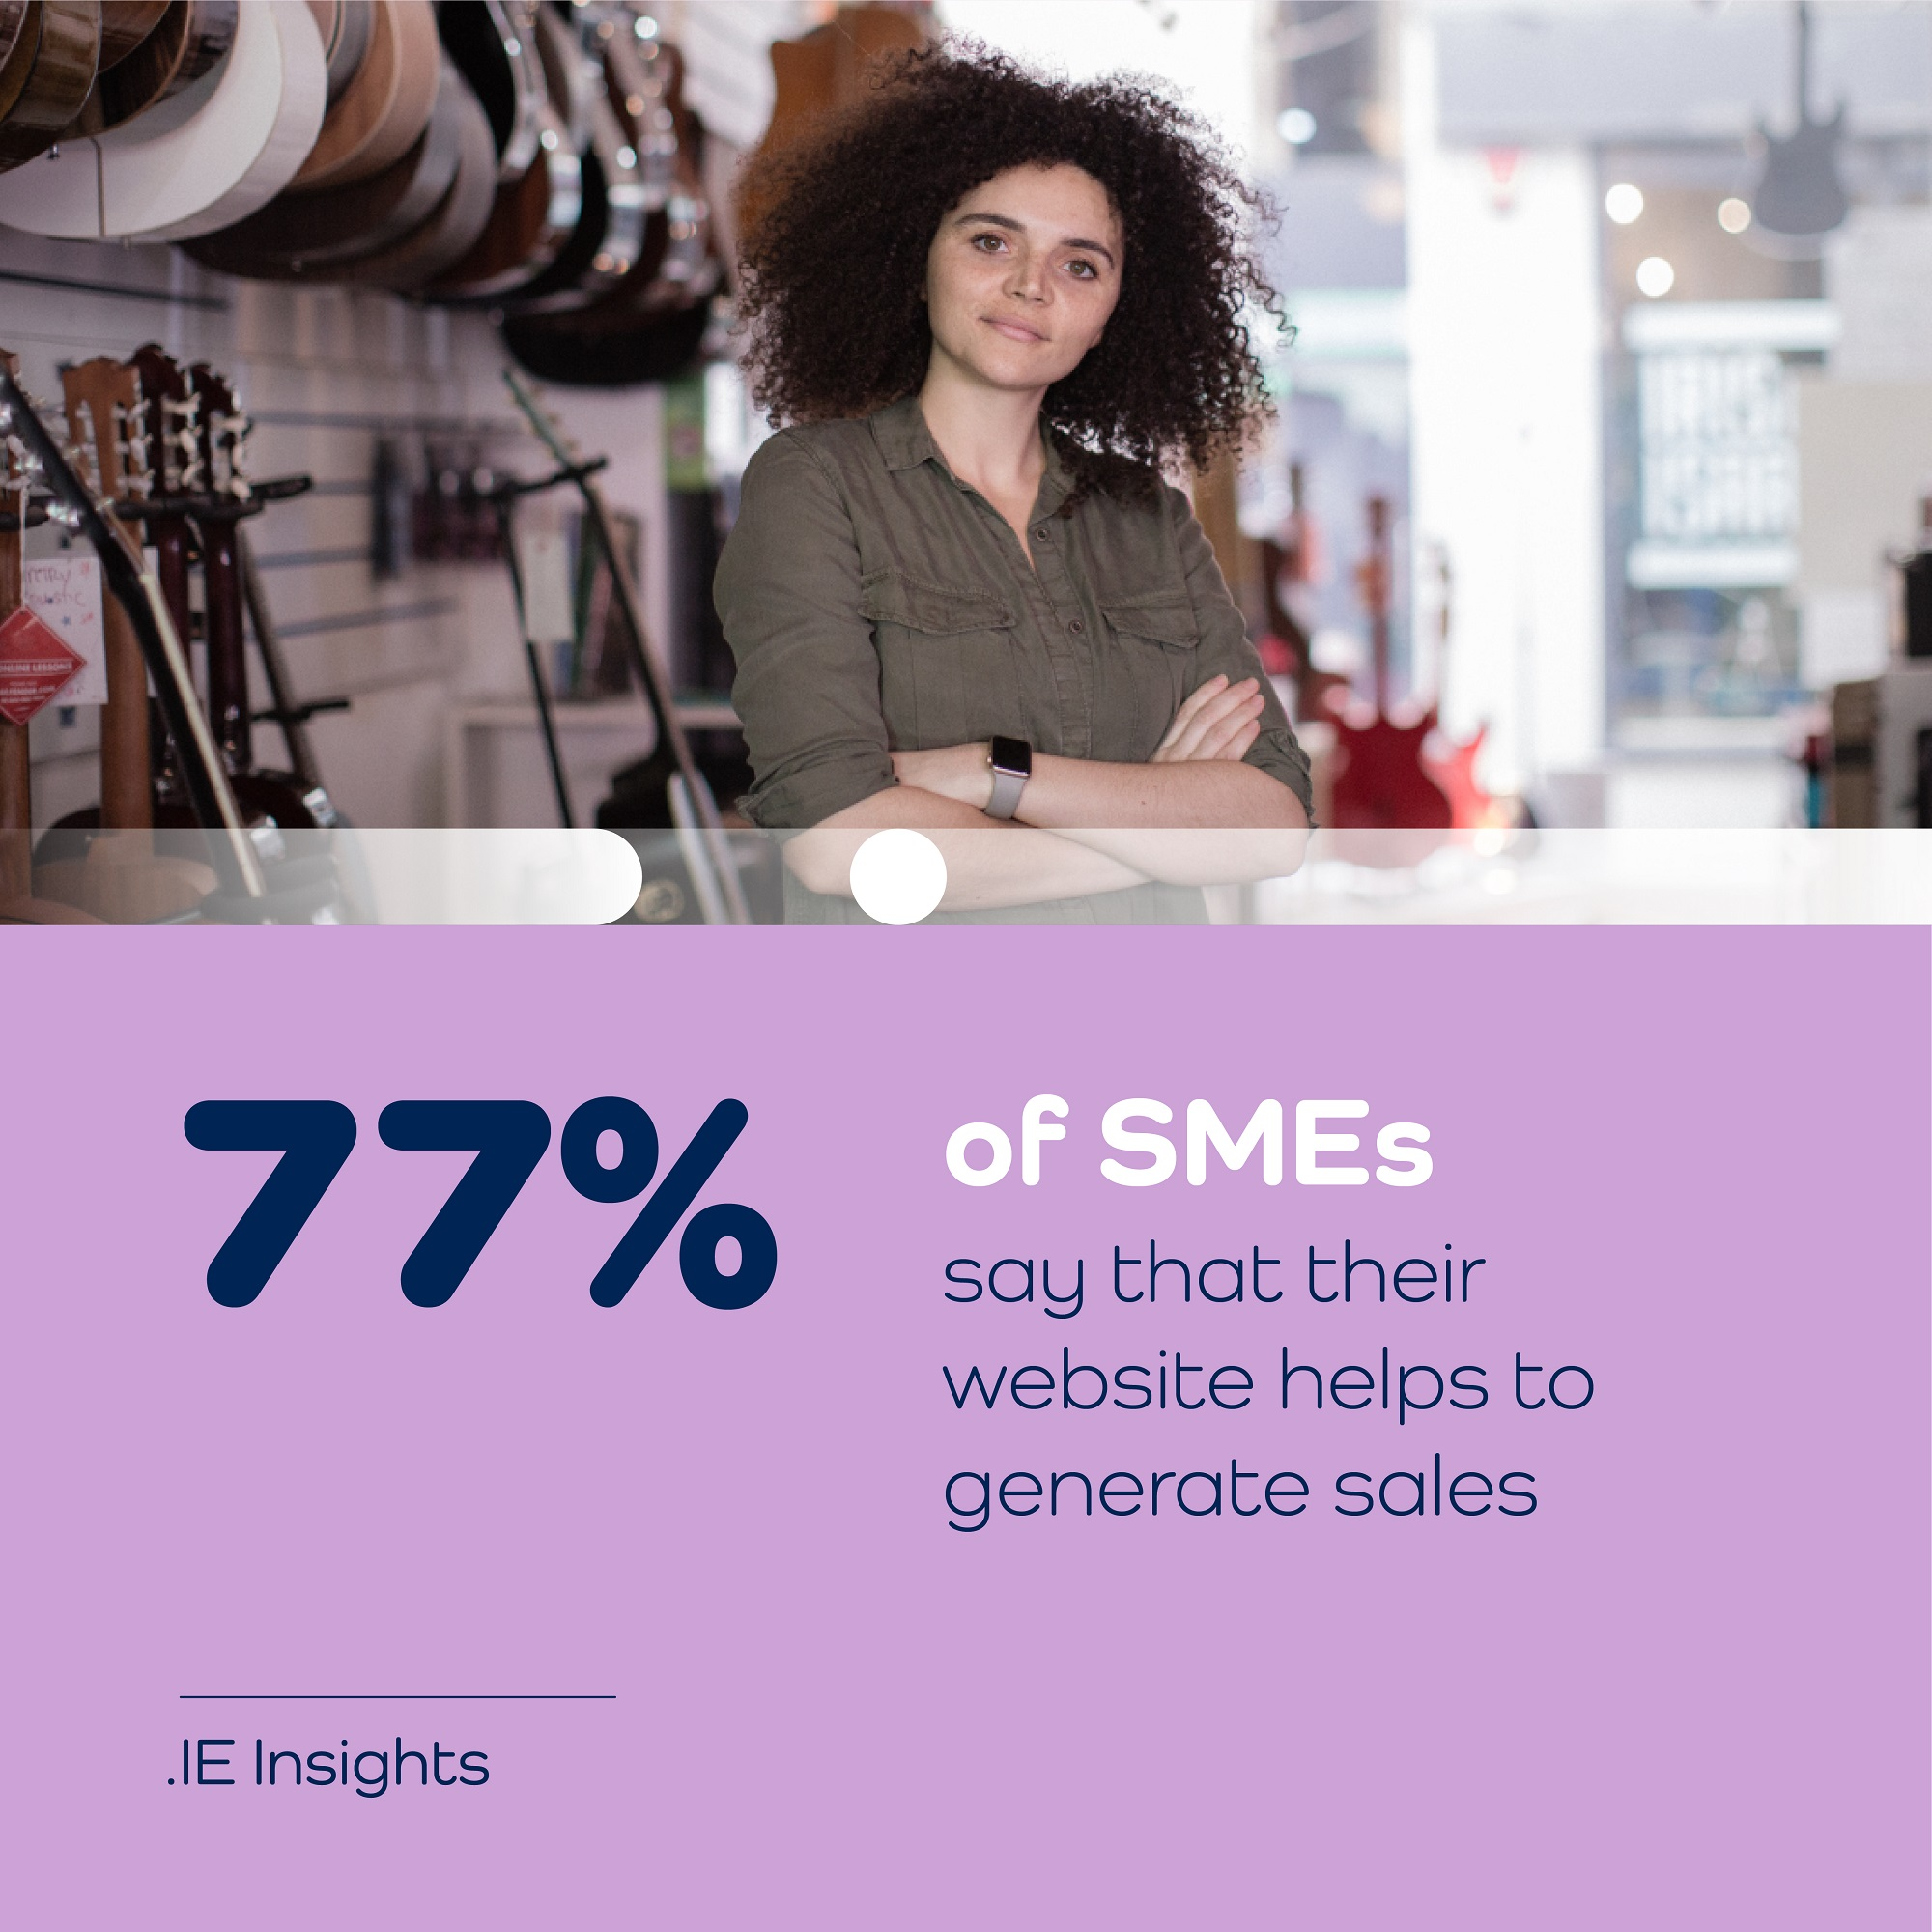 77% of SMEs say that their website helps to generate sales